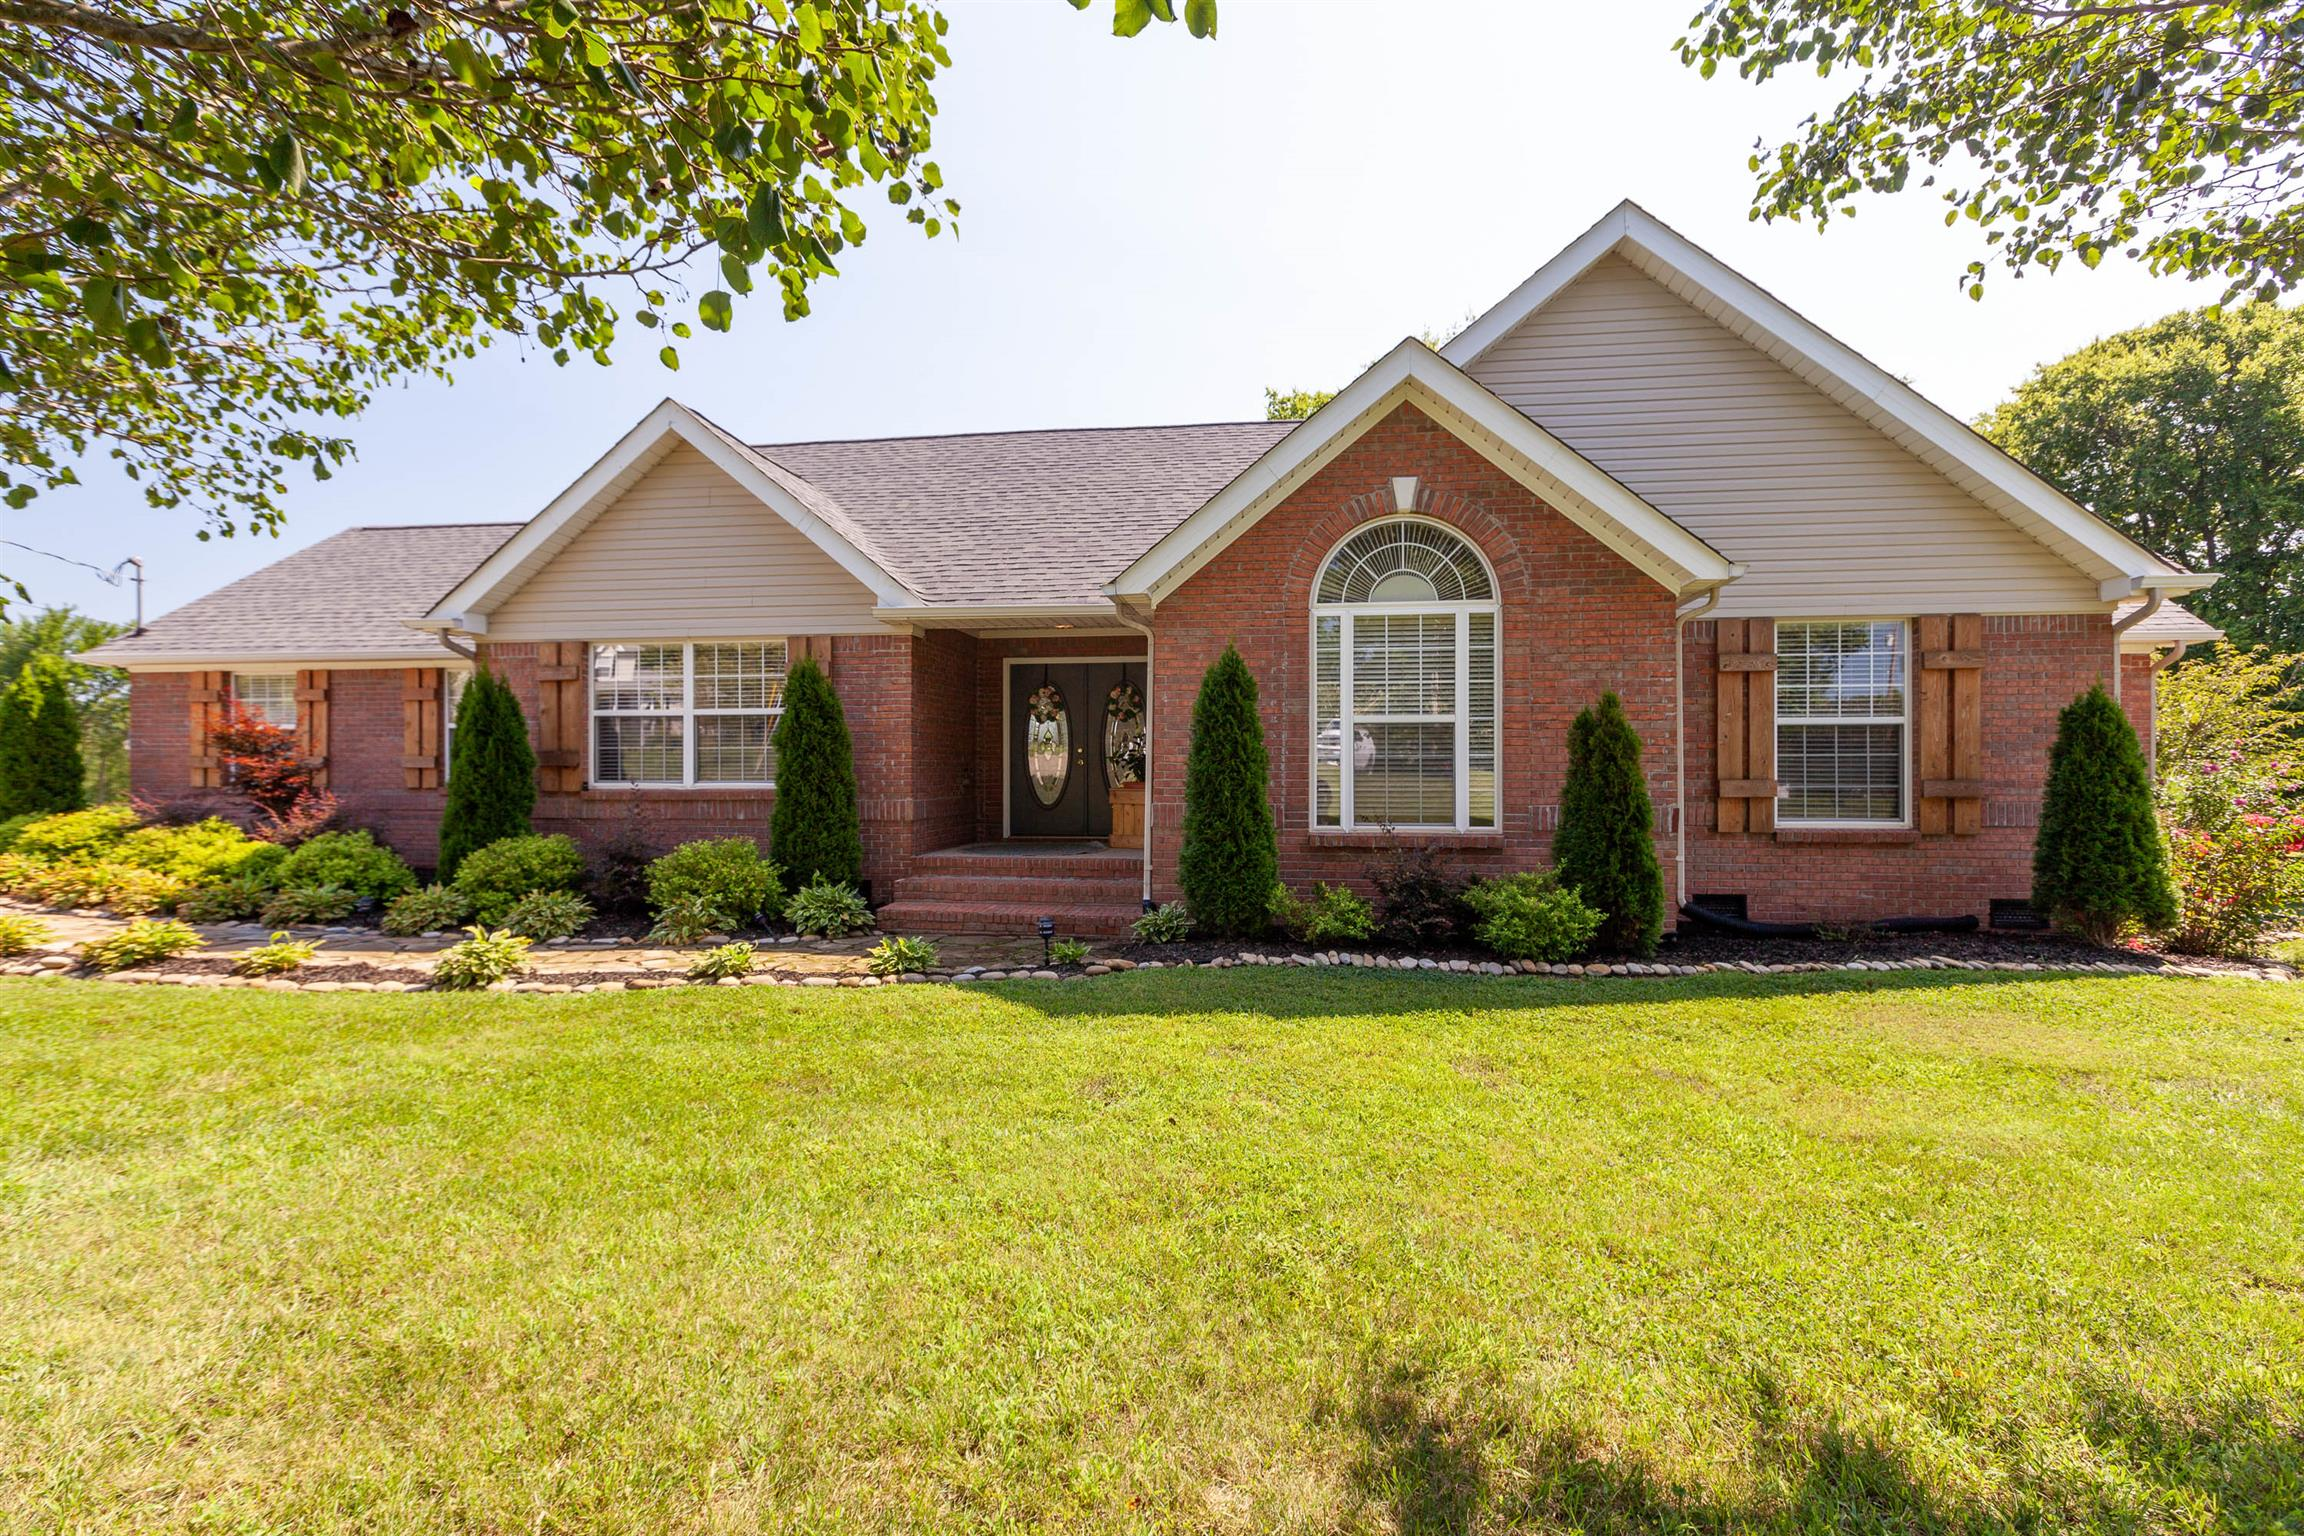 2534 Golden Pond Ln, Spring Hill, TN 37174 - Spring Hill, TN real estate listing